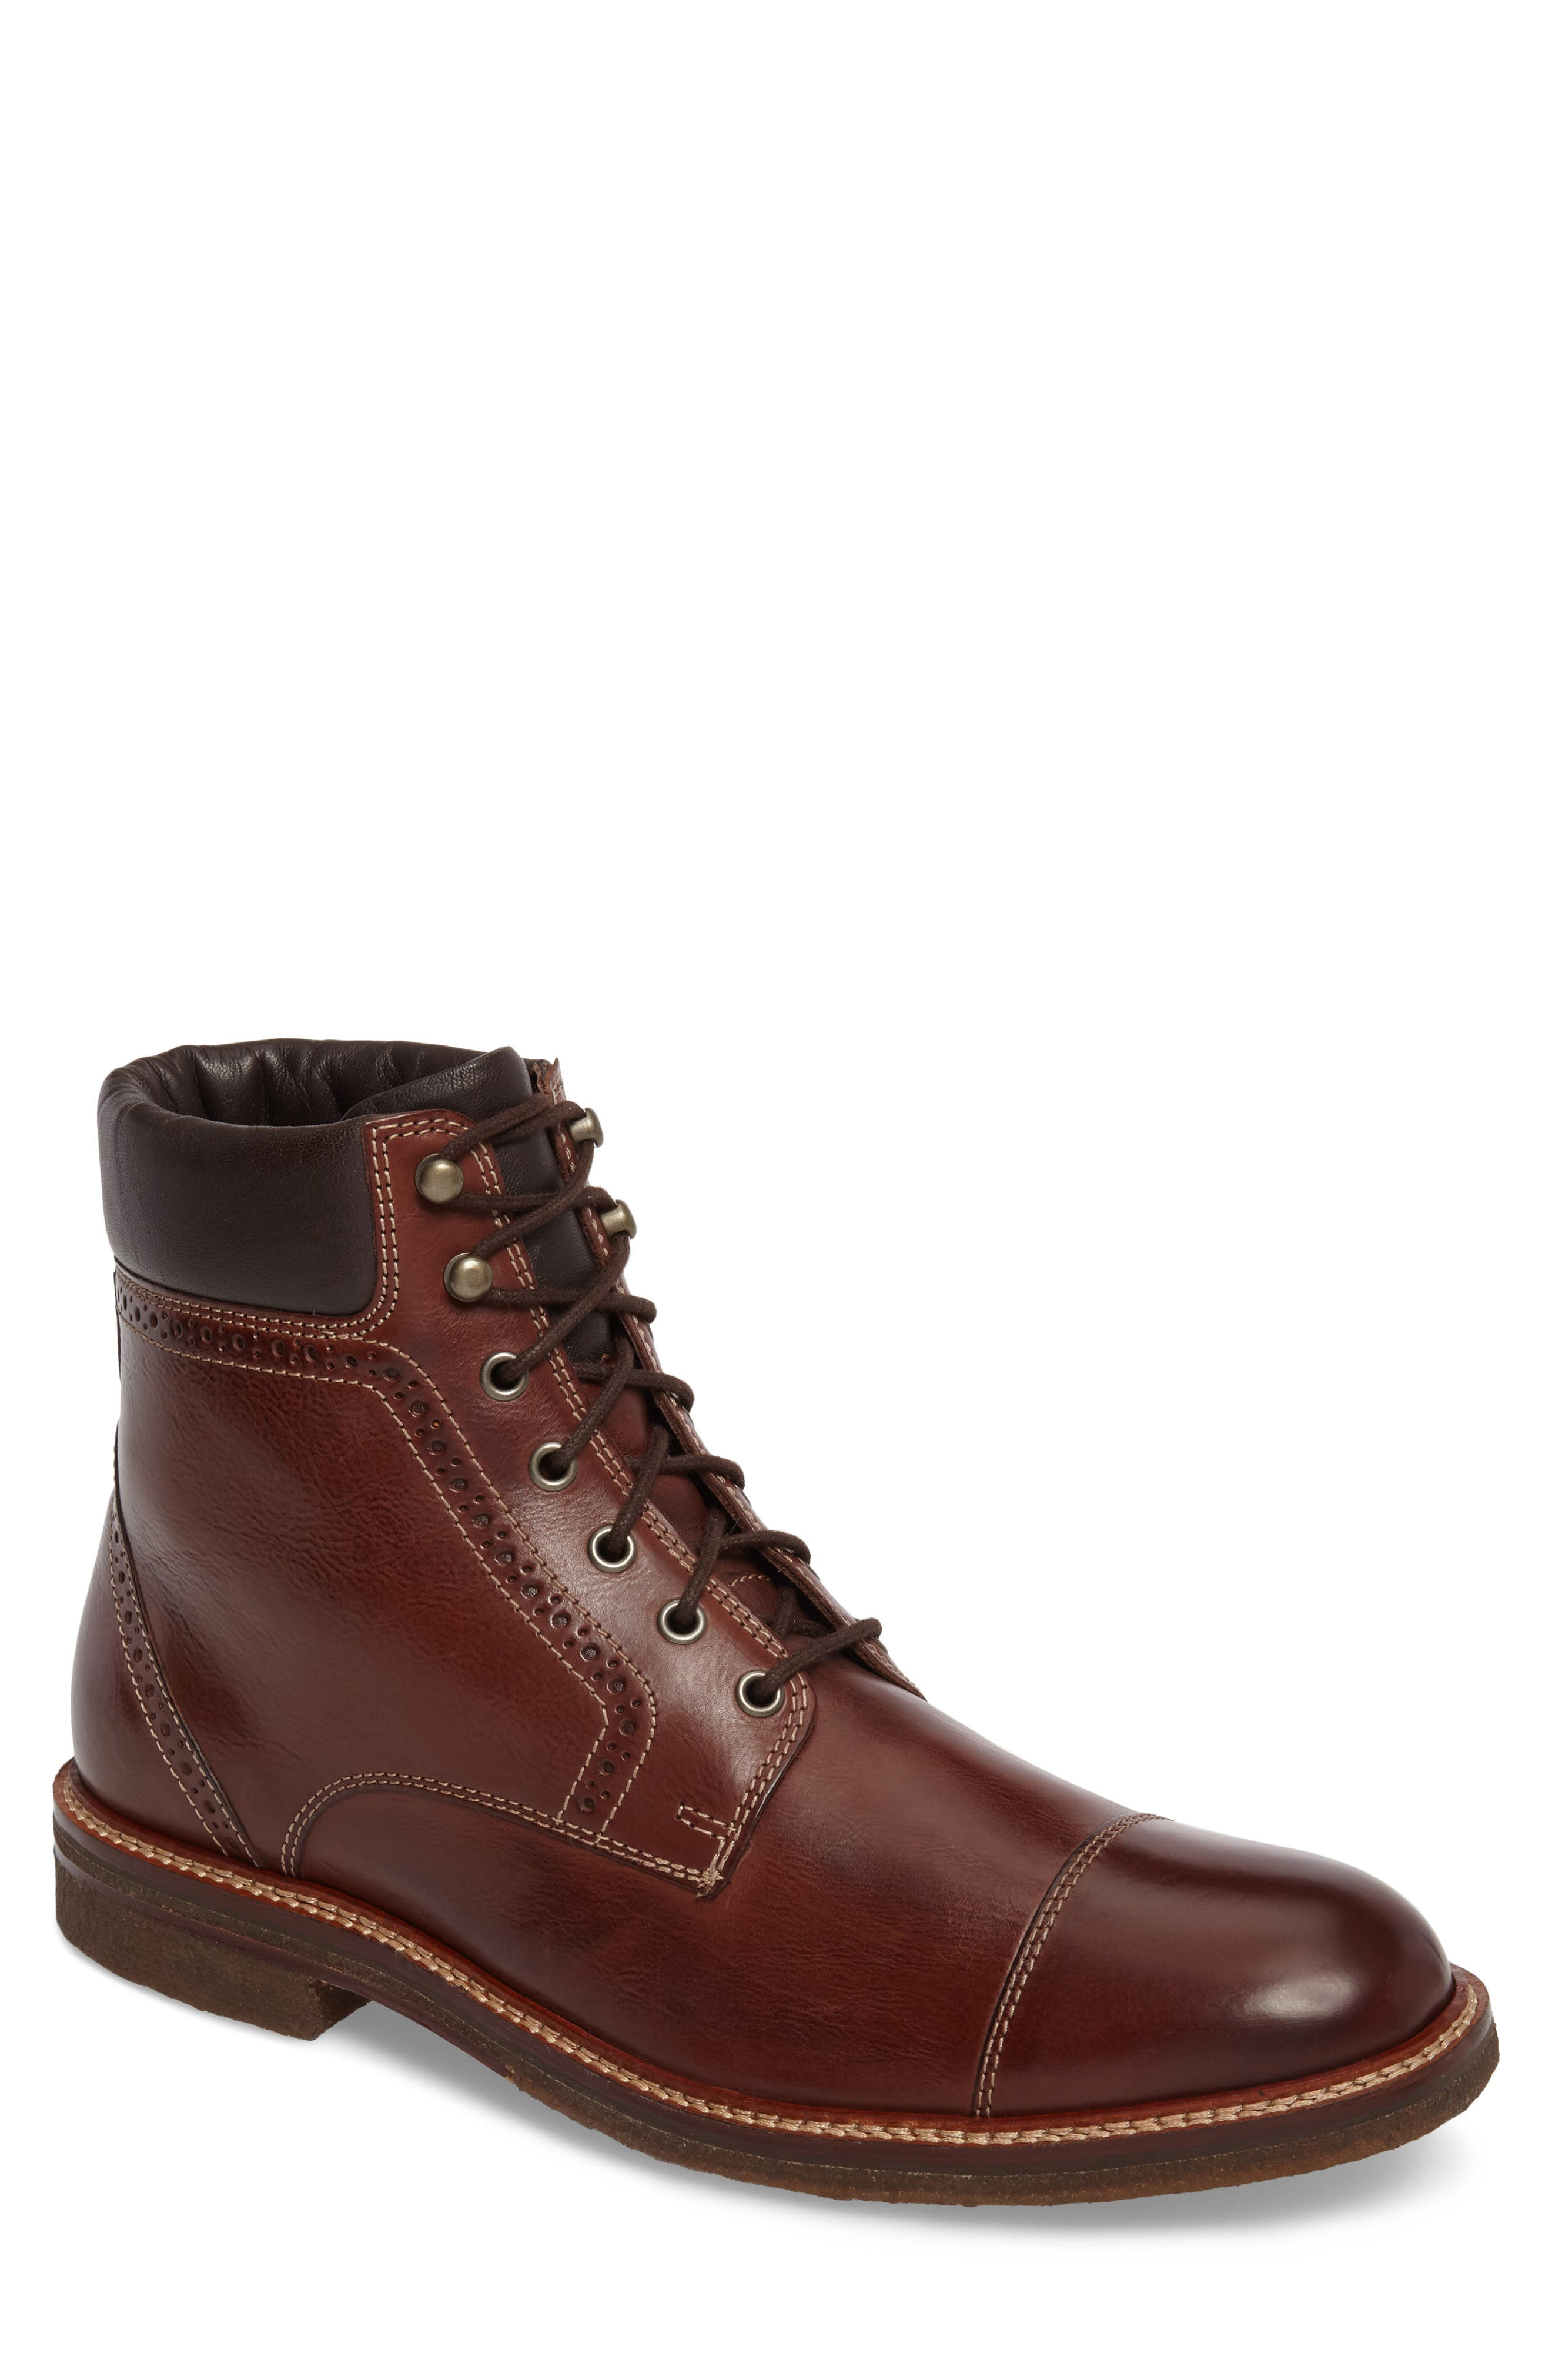 Forrester Cap Toe Boot,                         Main,                         color, Mahogany Leather